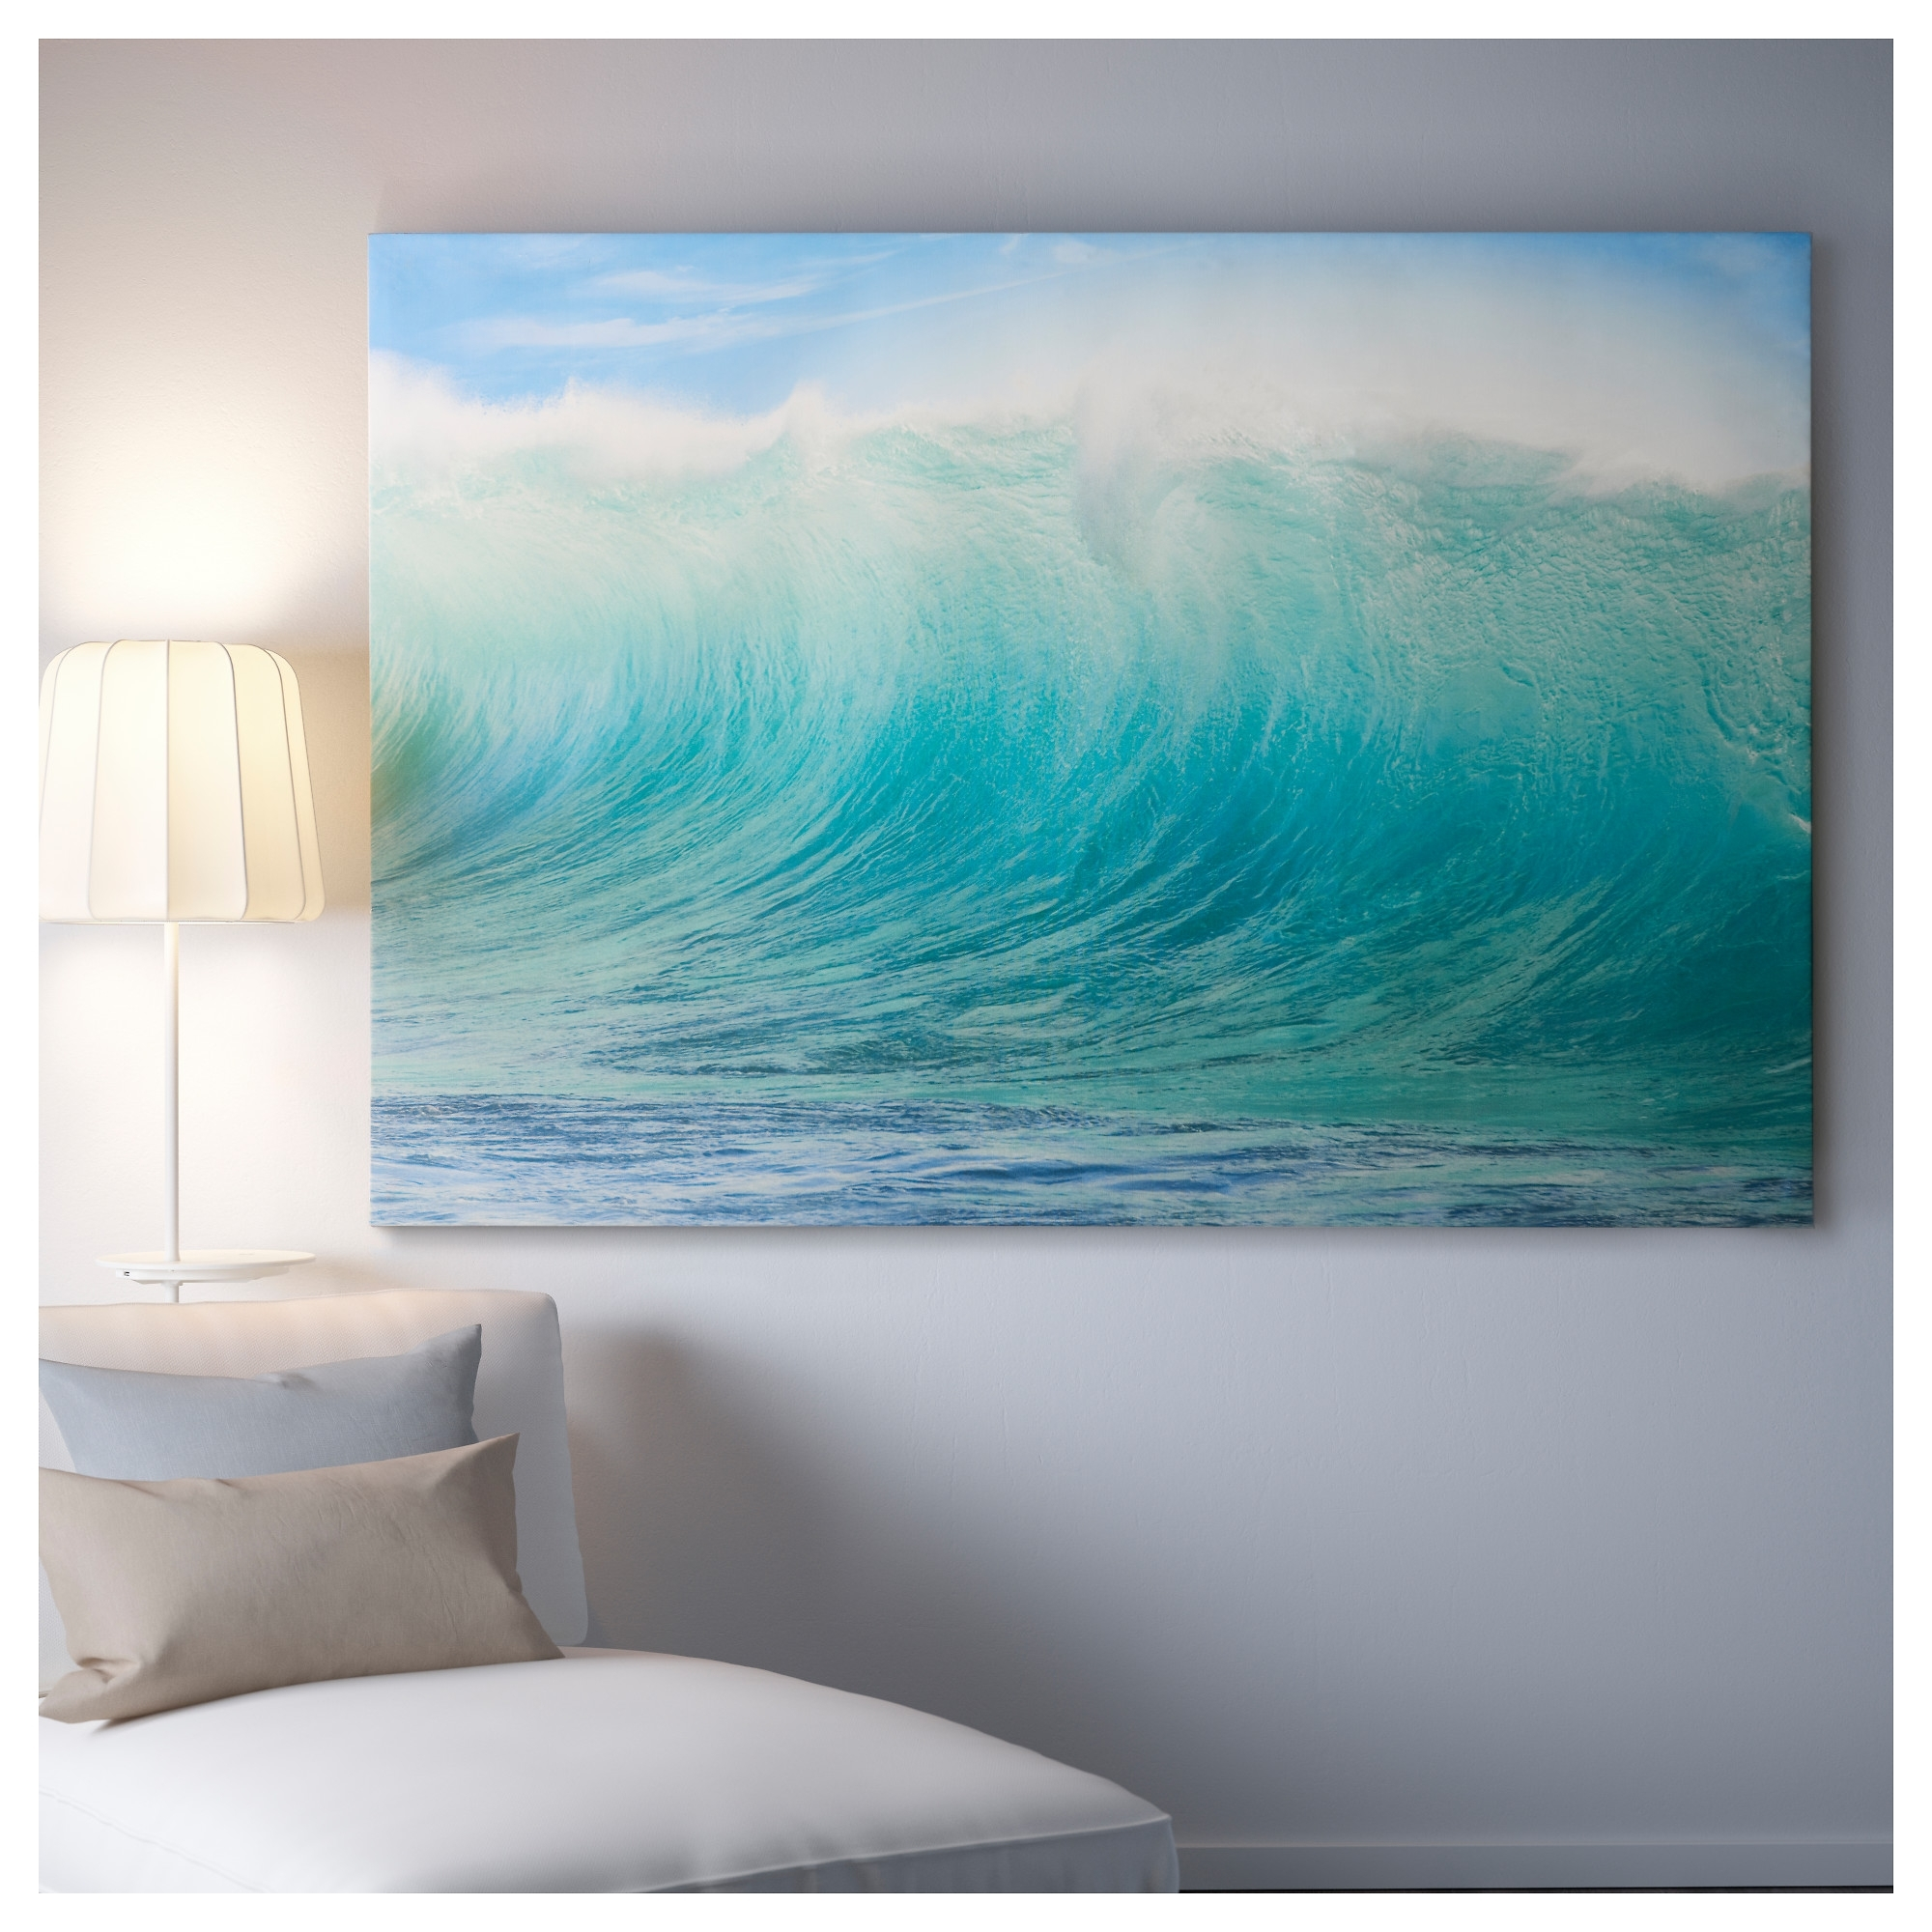 Premiär Picture - Ikea | Kash Crib | Pinterest | Sofa Bed Mattress throughout Current Ocean Canvas Wall Art